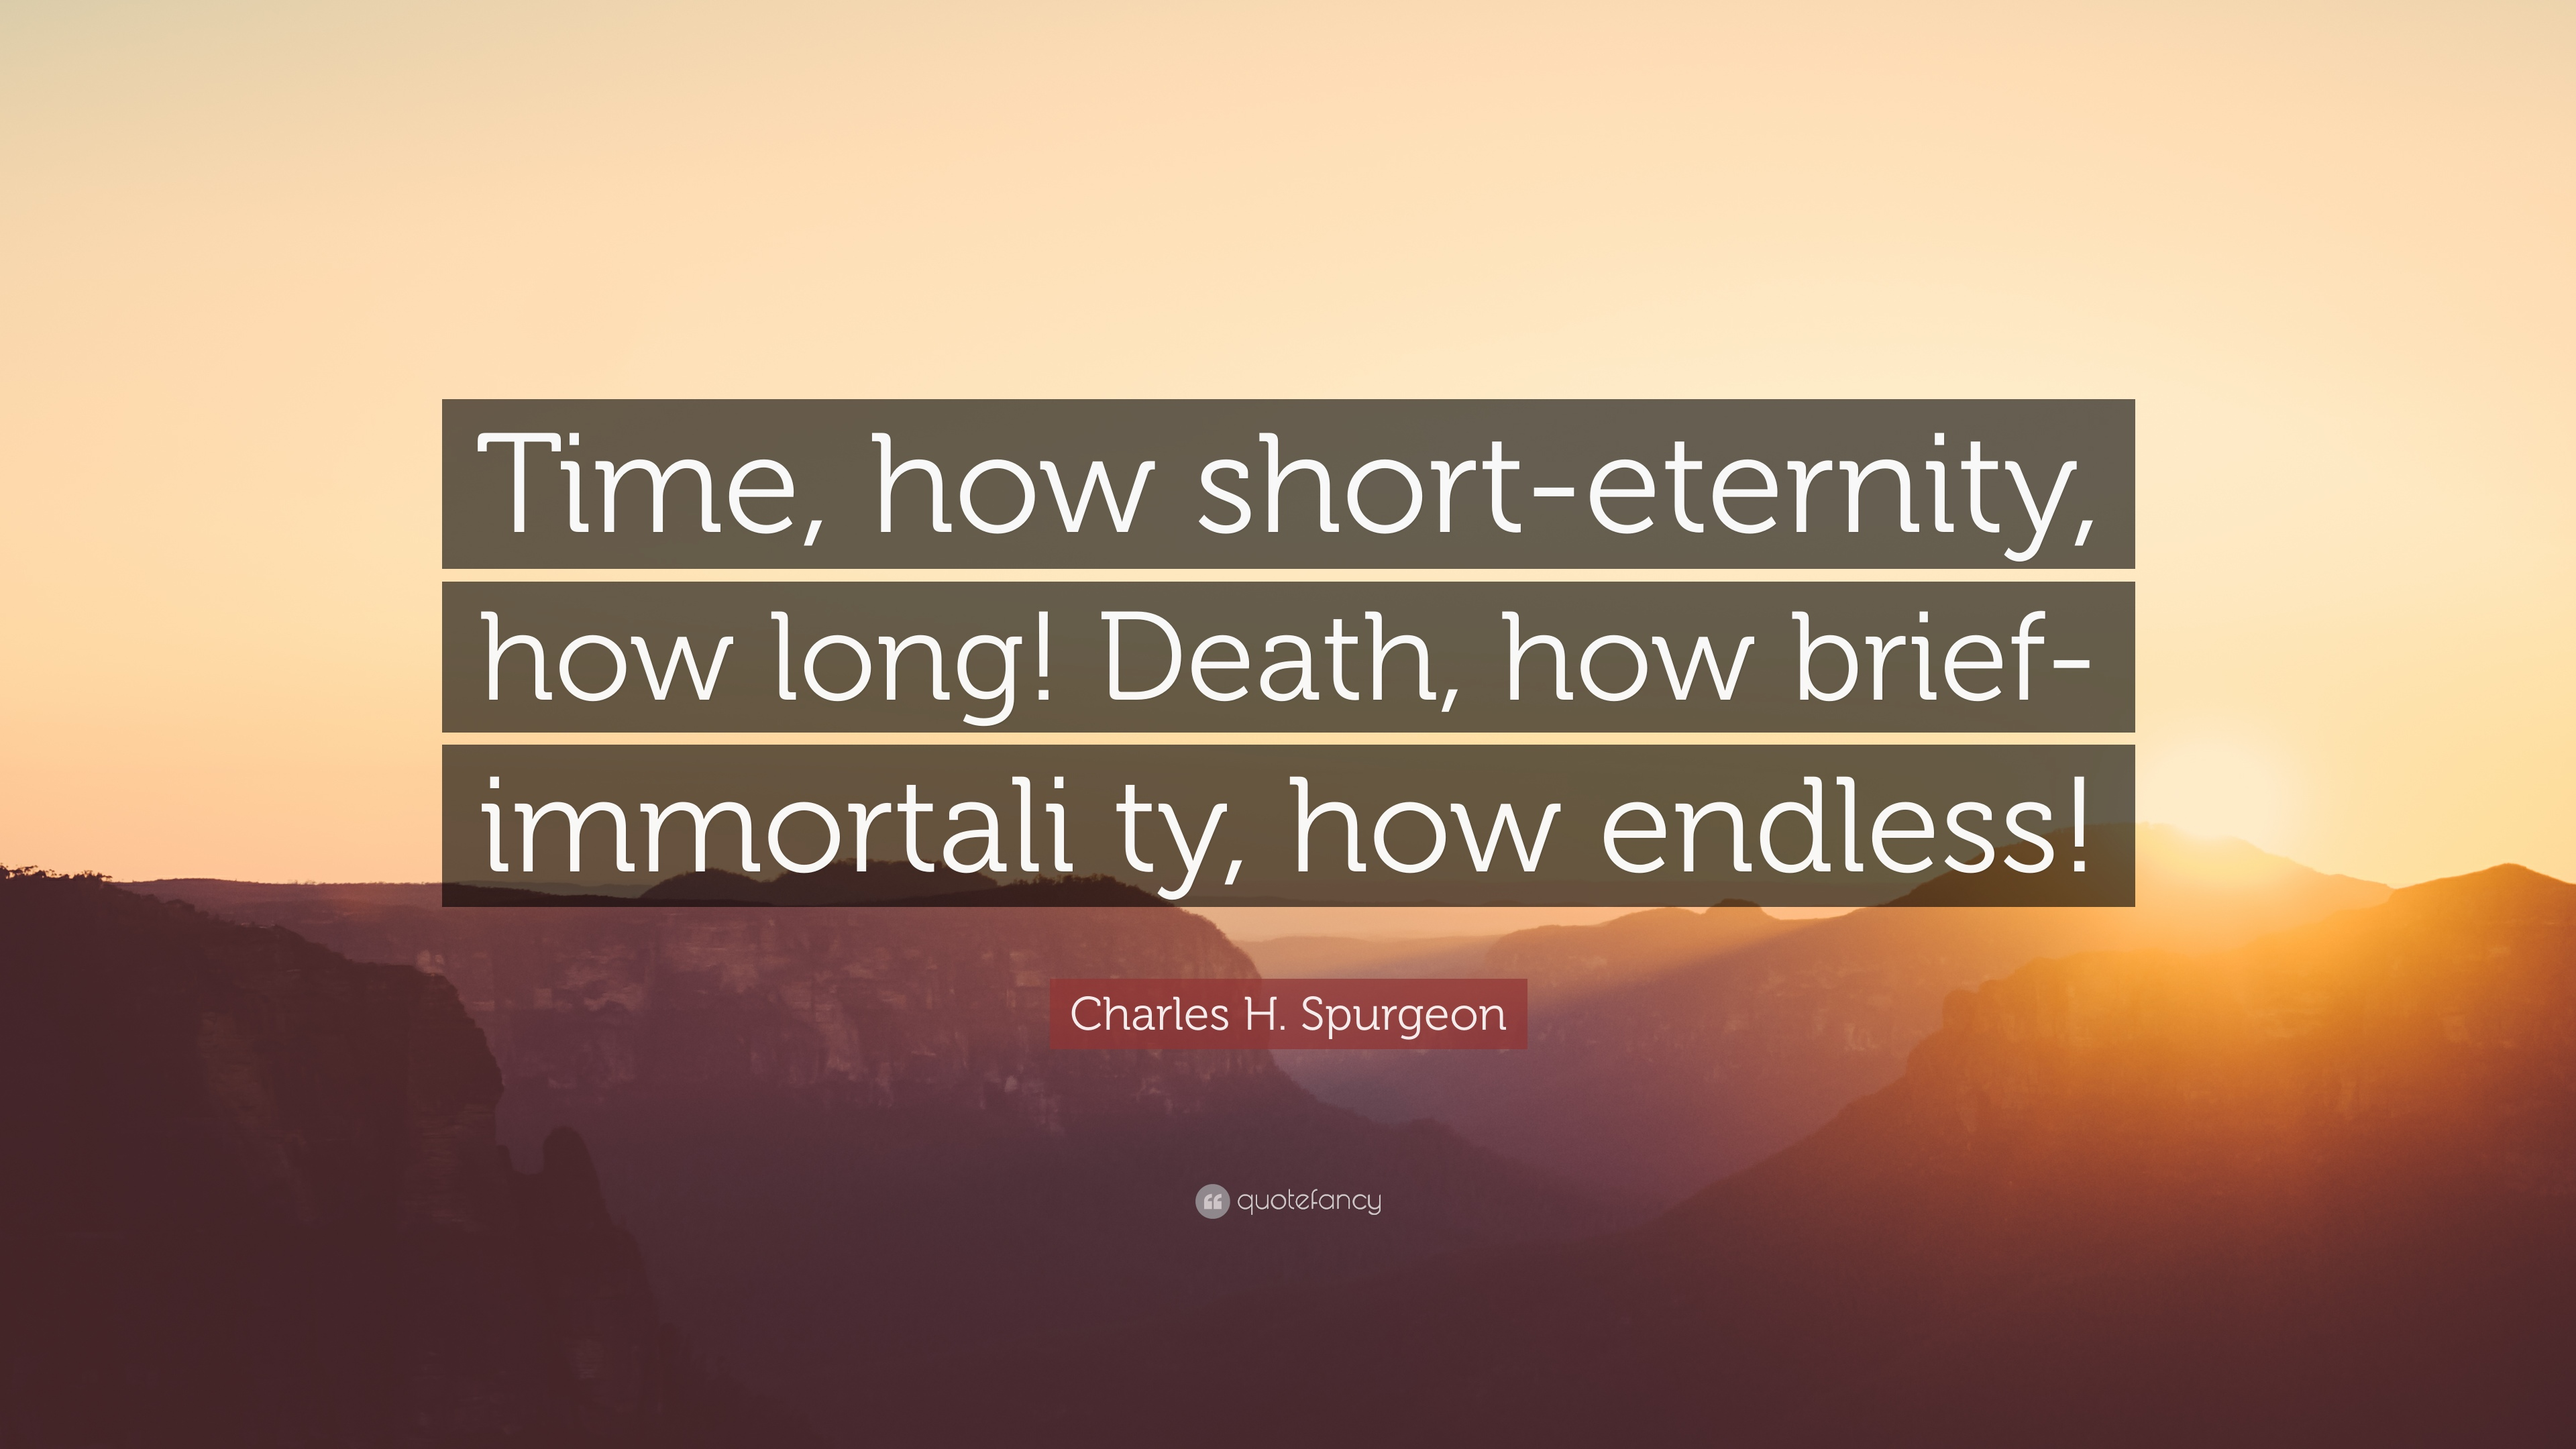 Charles H Spurgeon Quote Time How Short Eternity How Long Death How Brief Immortali Ty How Endless 7 Wallpapers Quotefancy